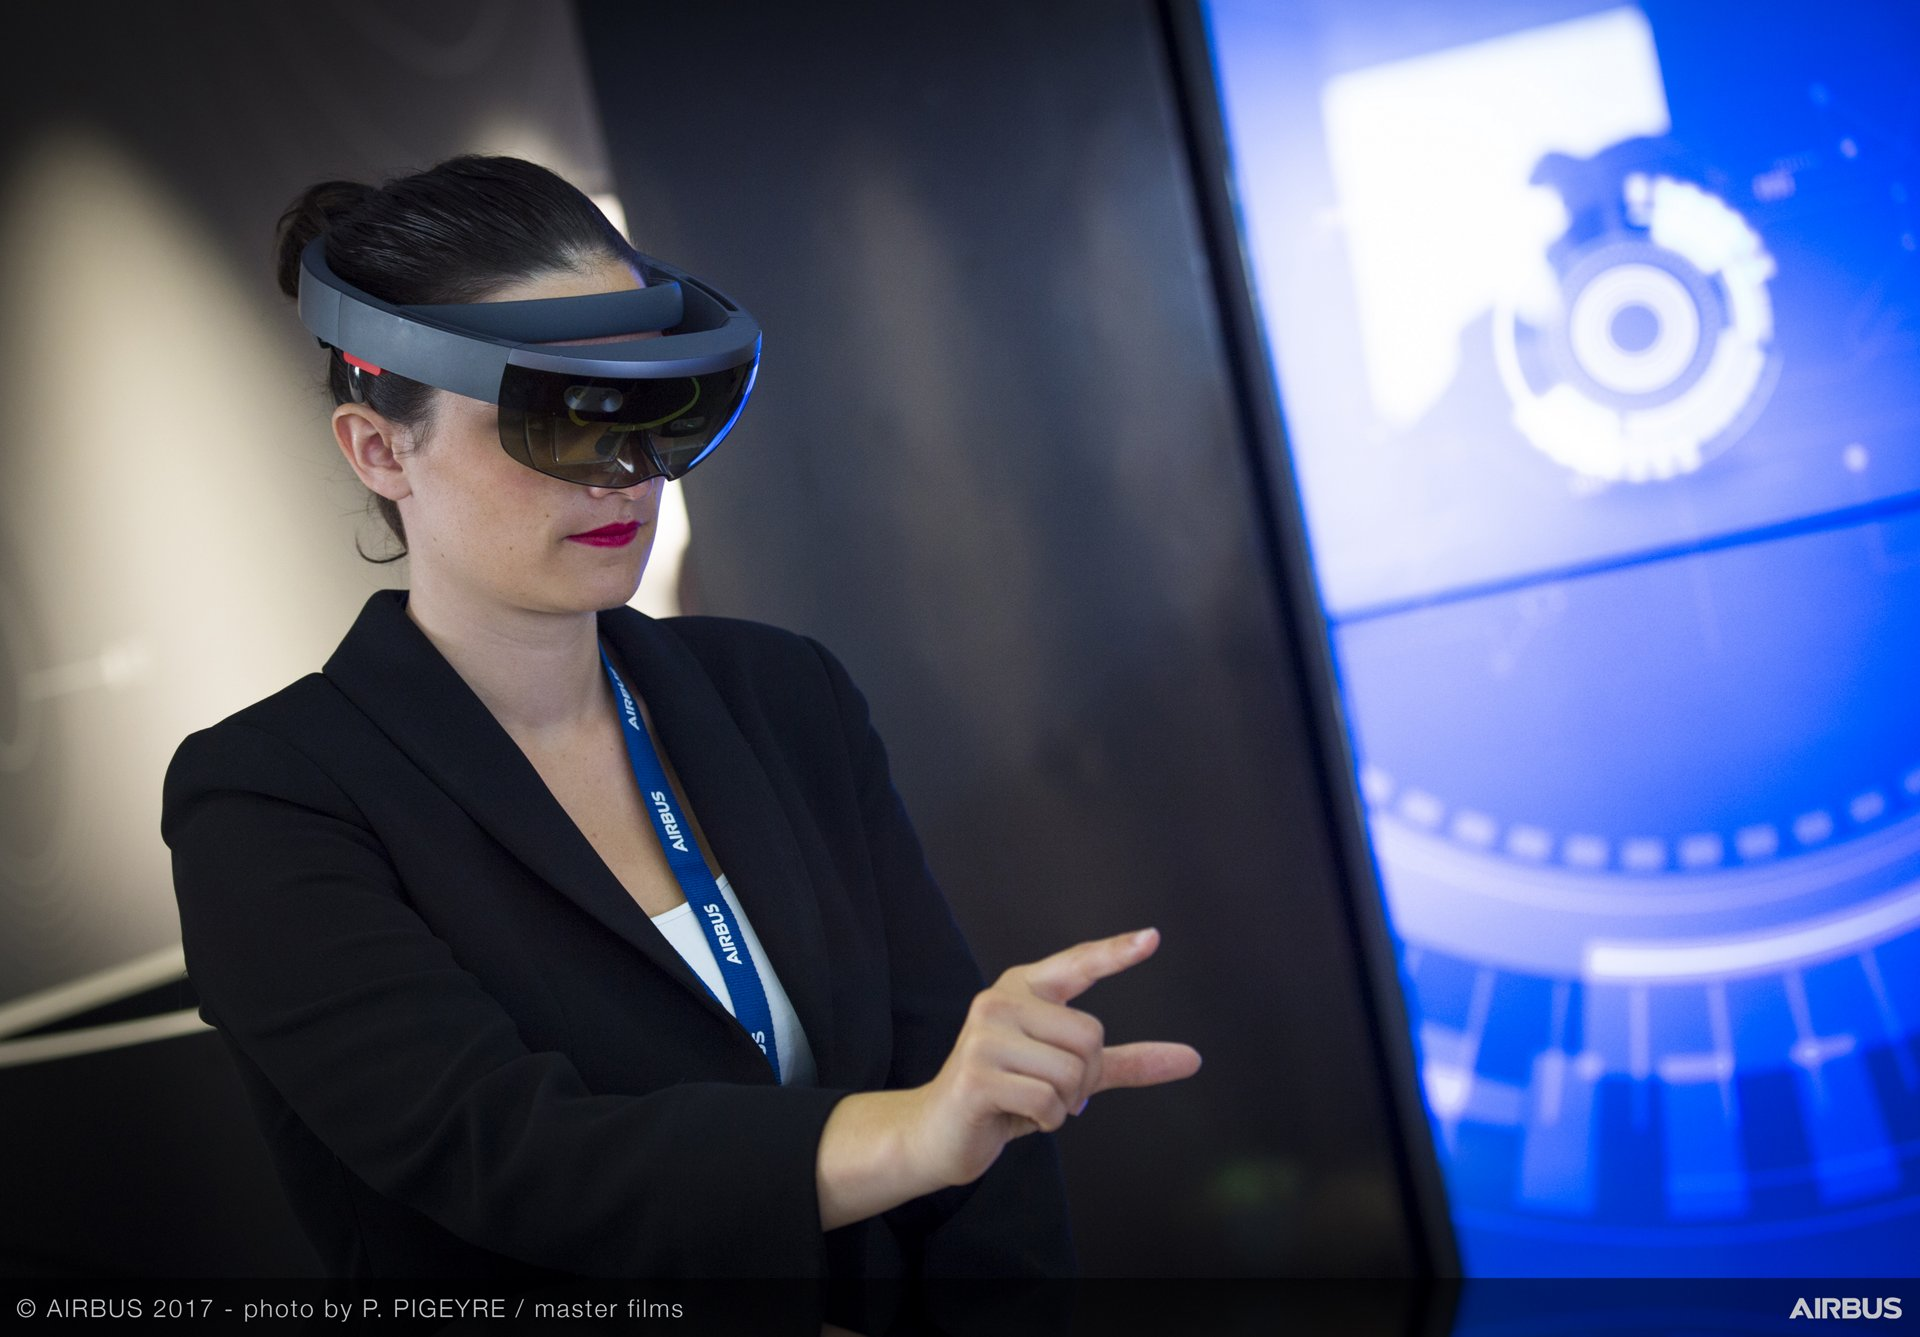 Airbus' Digital Accelerator integrates new-generation digital technologies – including virtual reality headsets – into the company's operations.